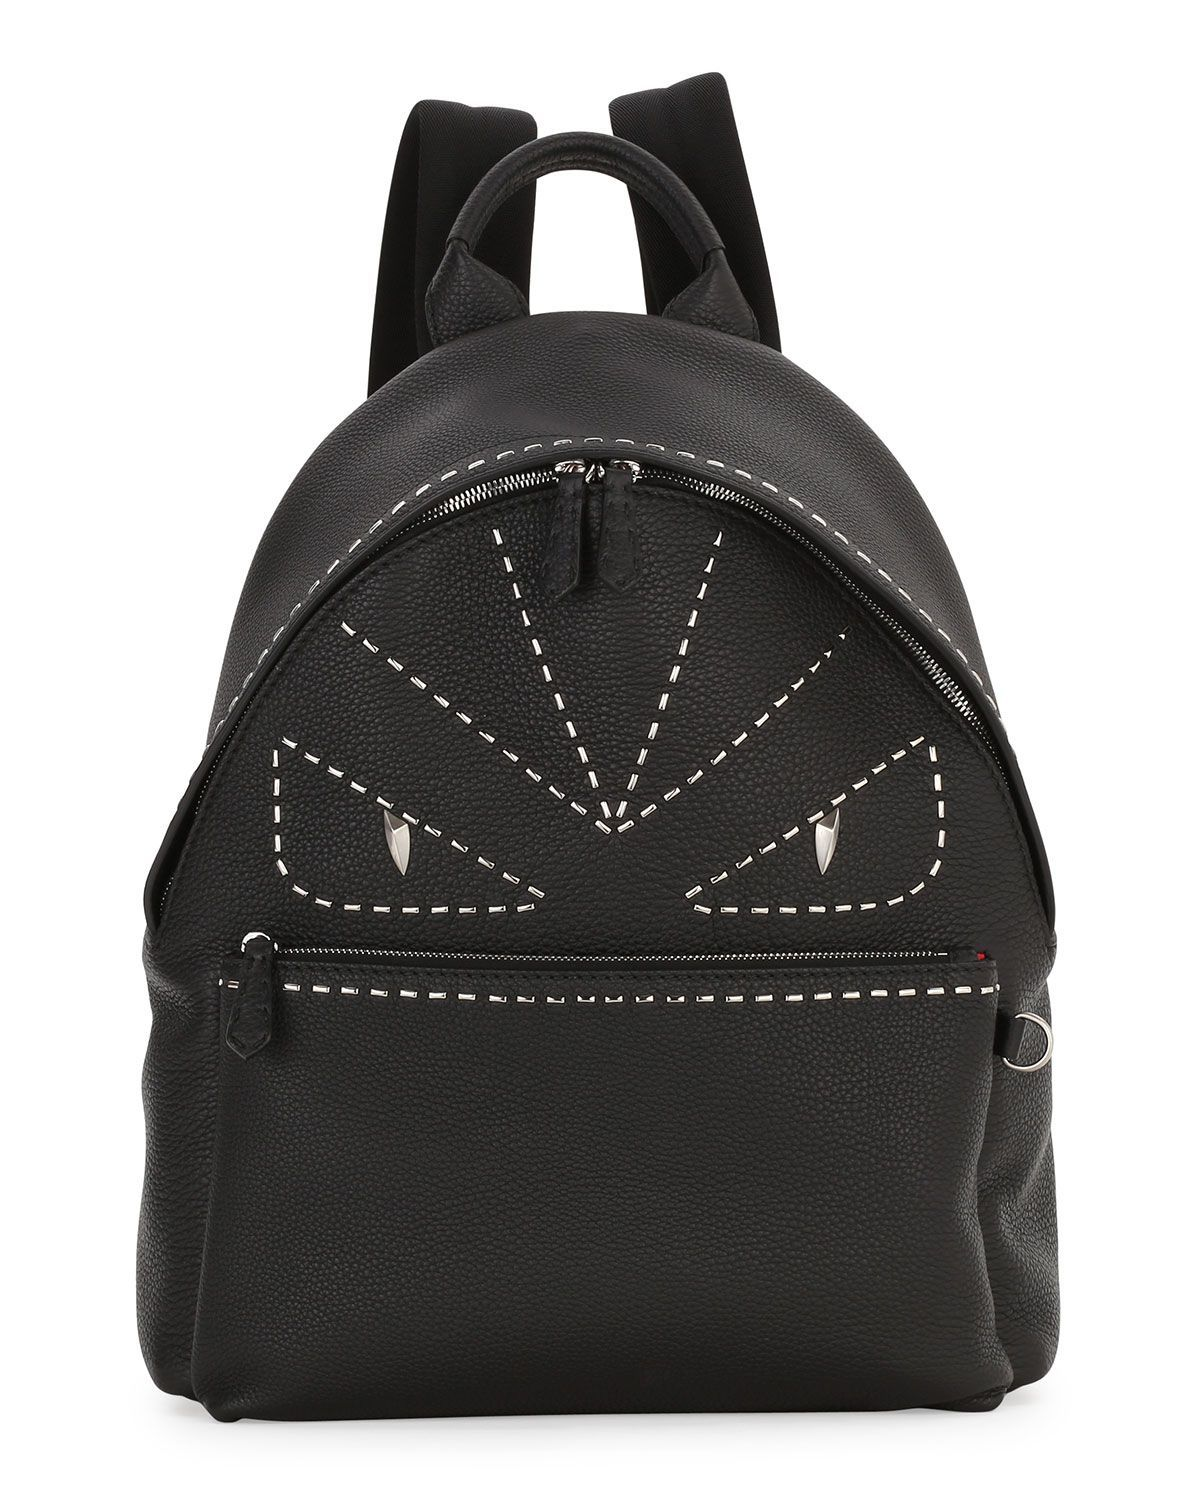 6b0aa73b3ee9 ... bag black outlet york fce01 dfce6  best price medium clipper in army  green dazzle camo canvas family mulberry clothes and style pinterest